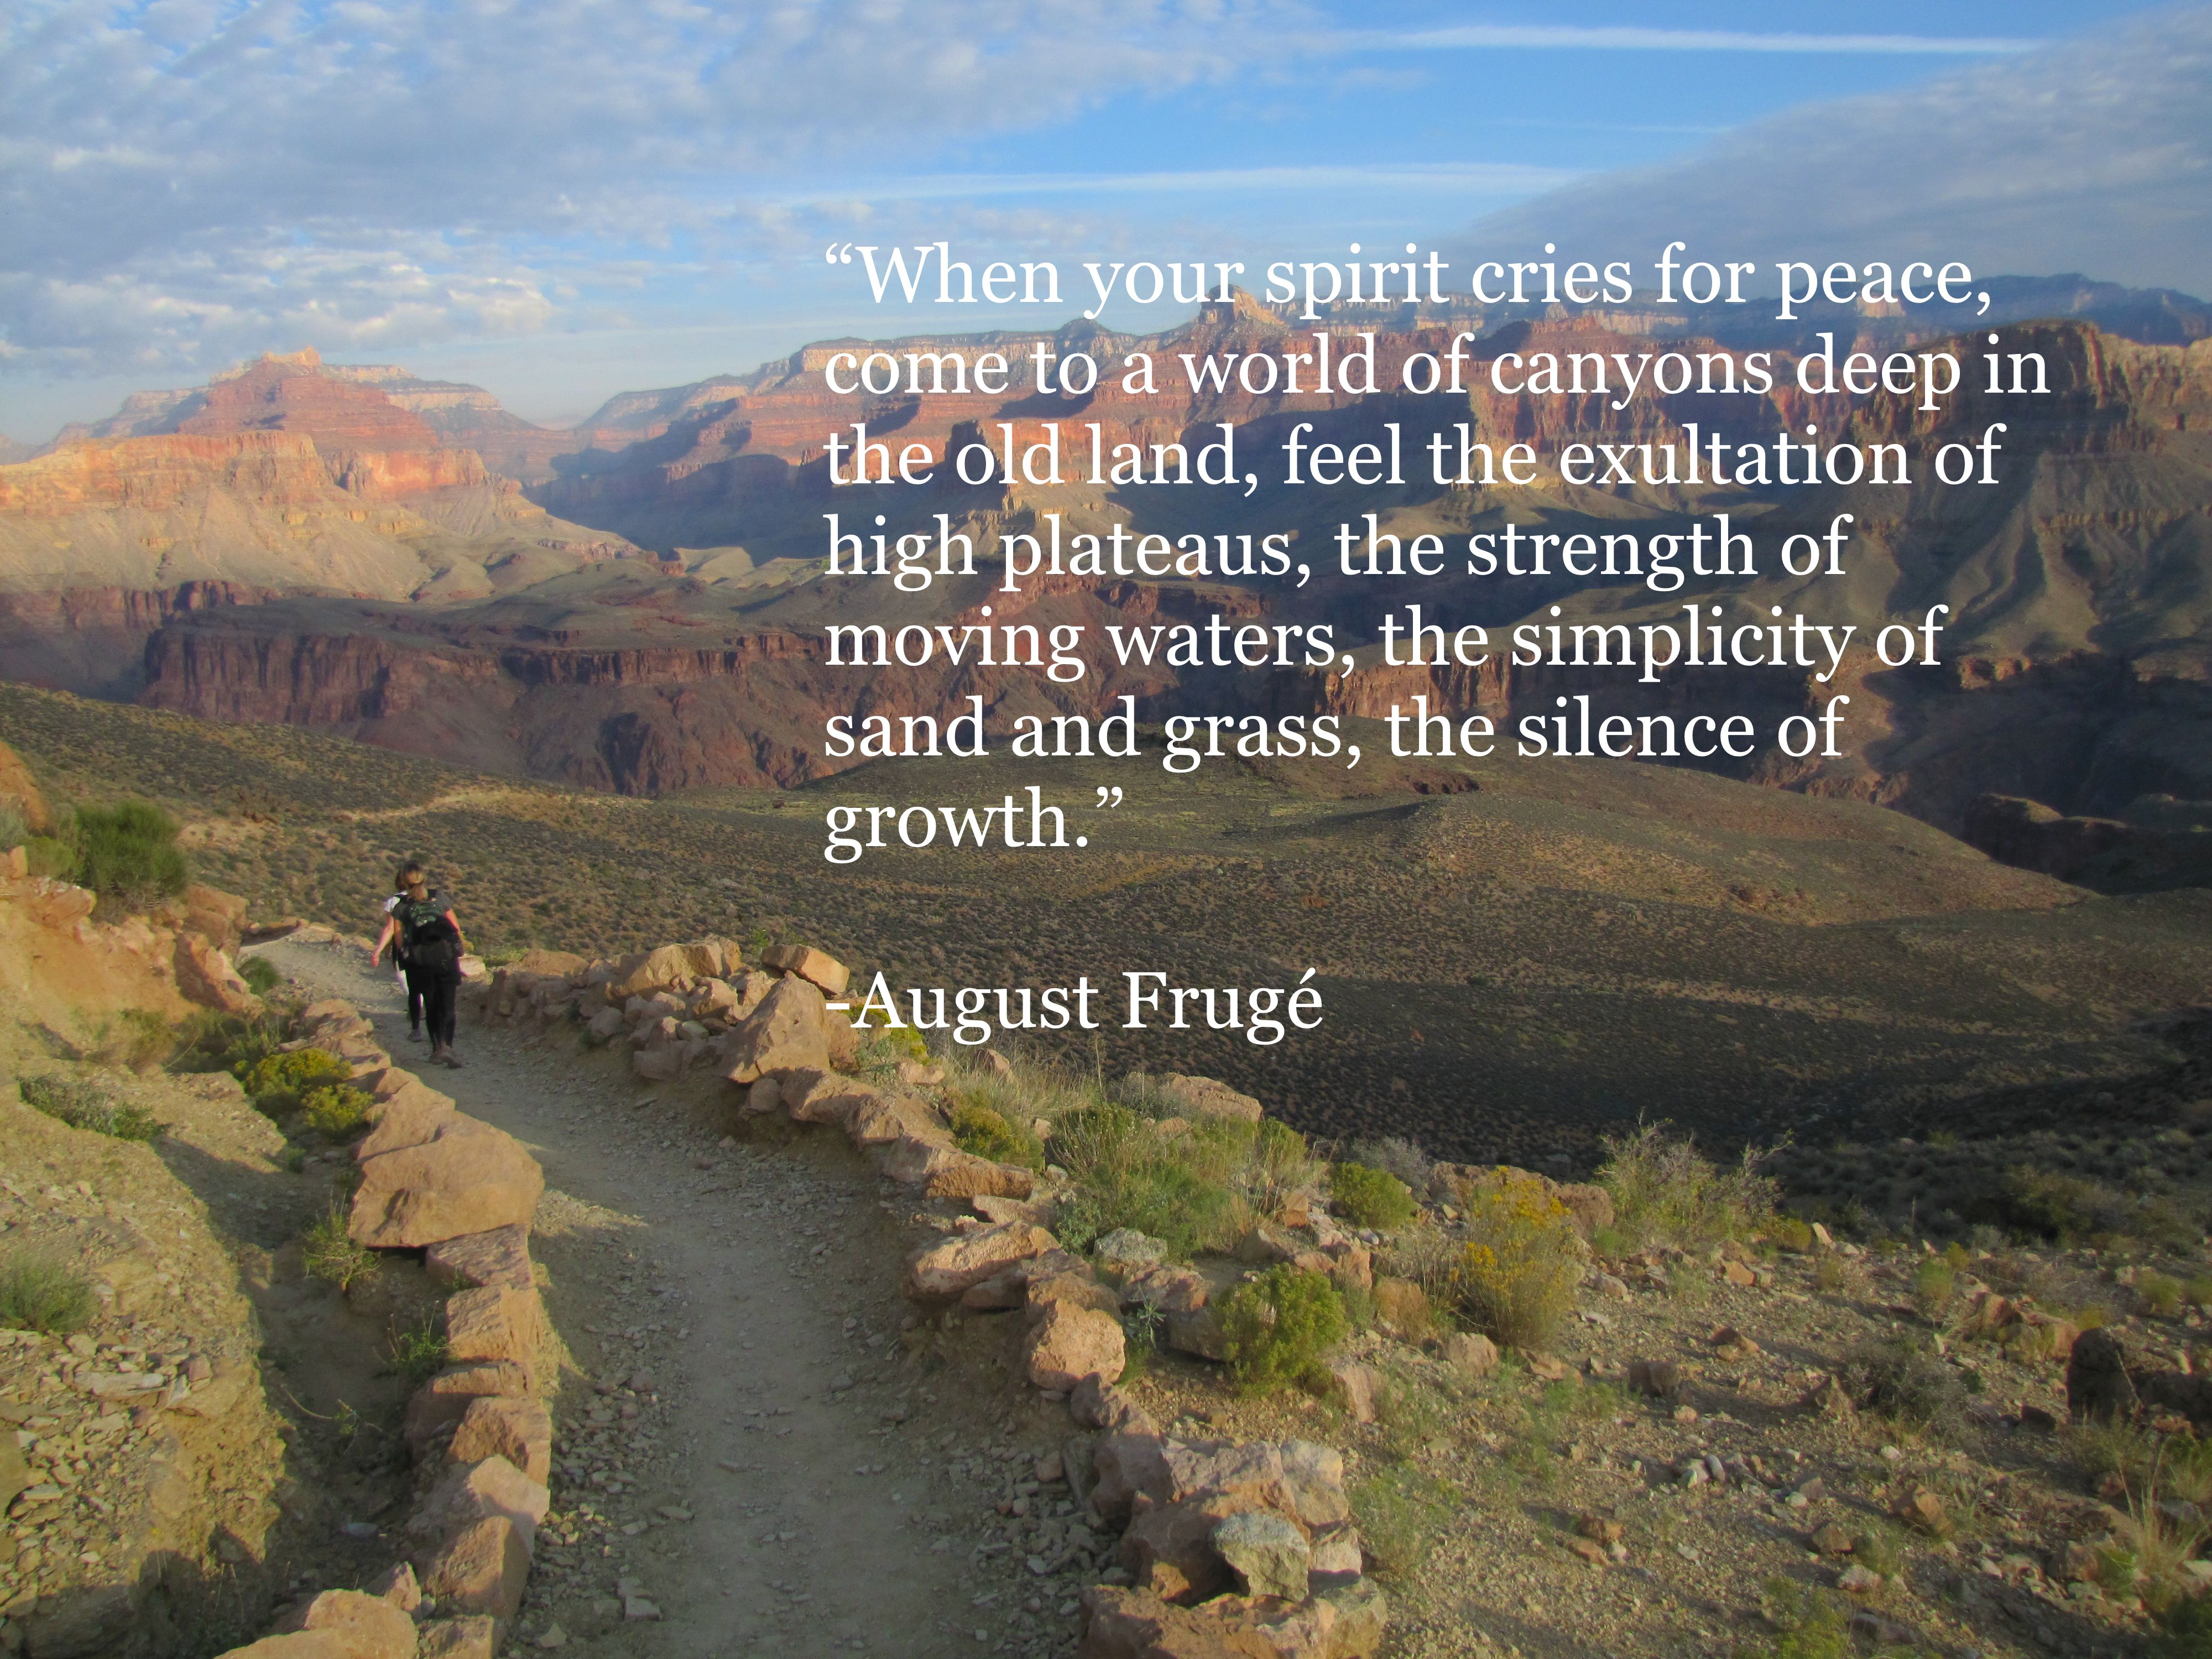 Grand Canyon Quotes Inspiring Quotes about the Grand Canyon. | Travel Quotes  Grand Canyon Quotes